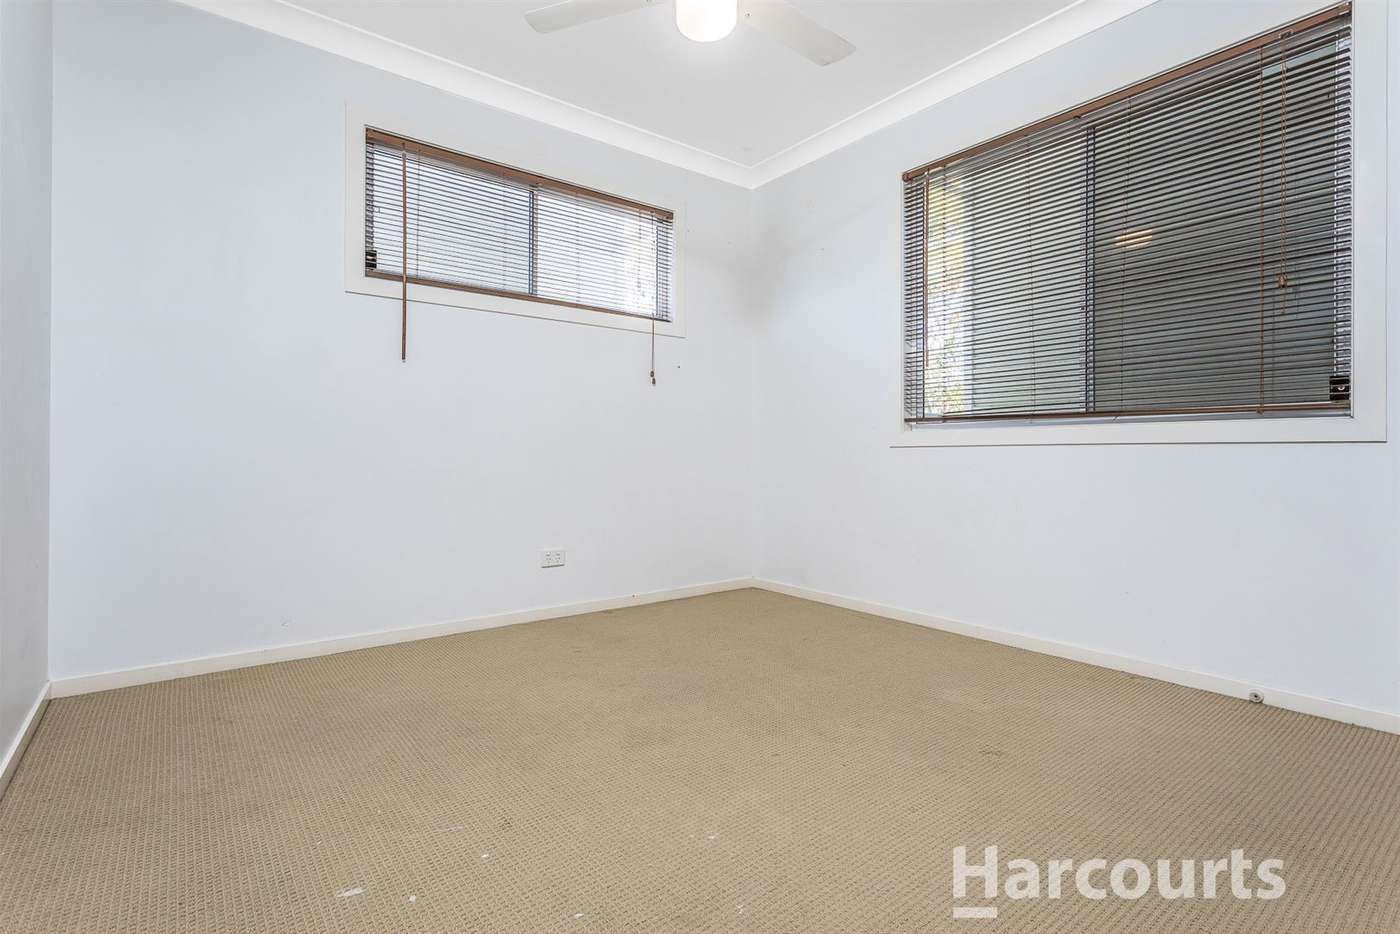 Sixth view of Homely unit listing, 16/9 Pitt Road, Burpengary QLD 4505